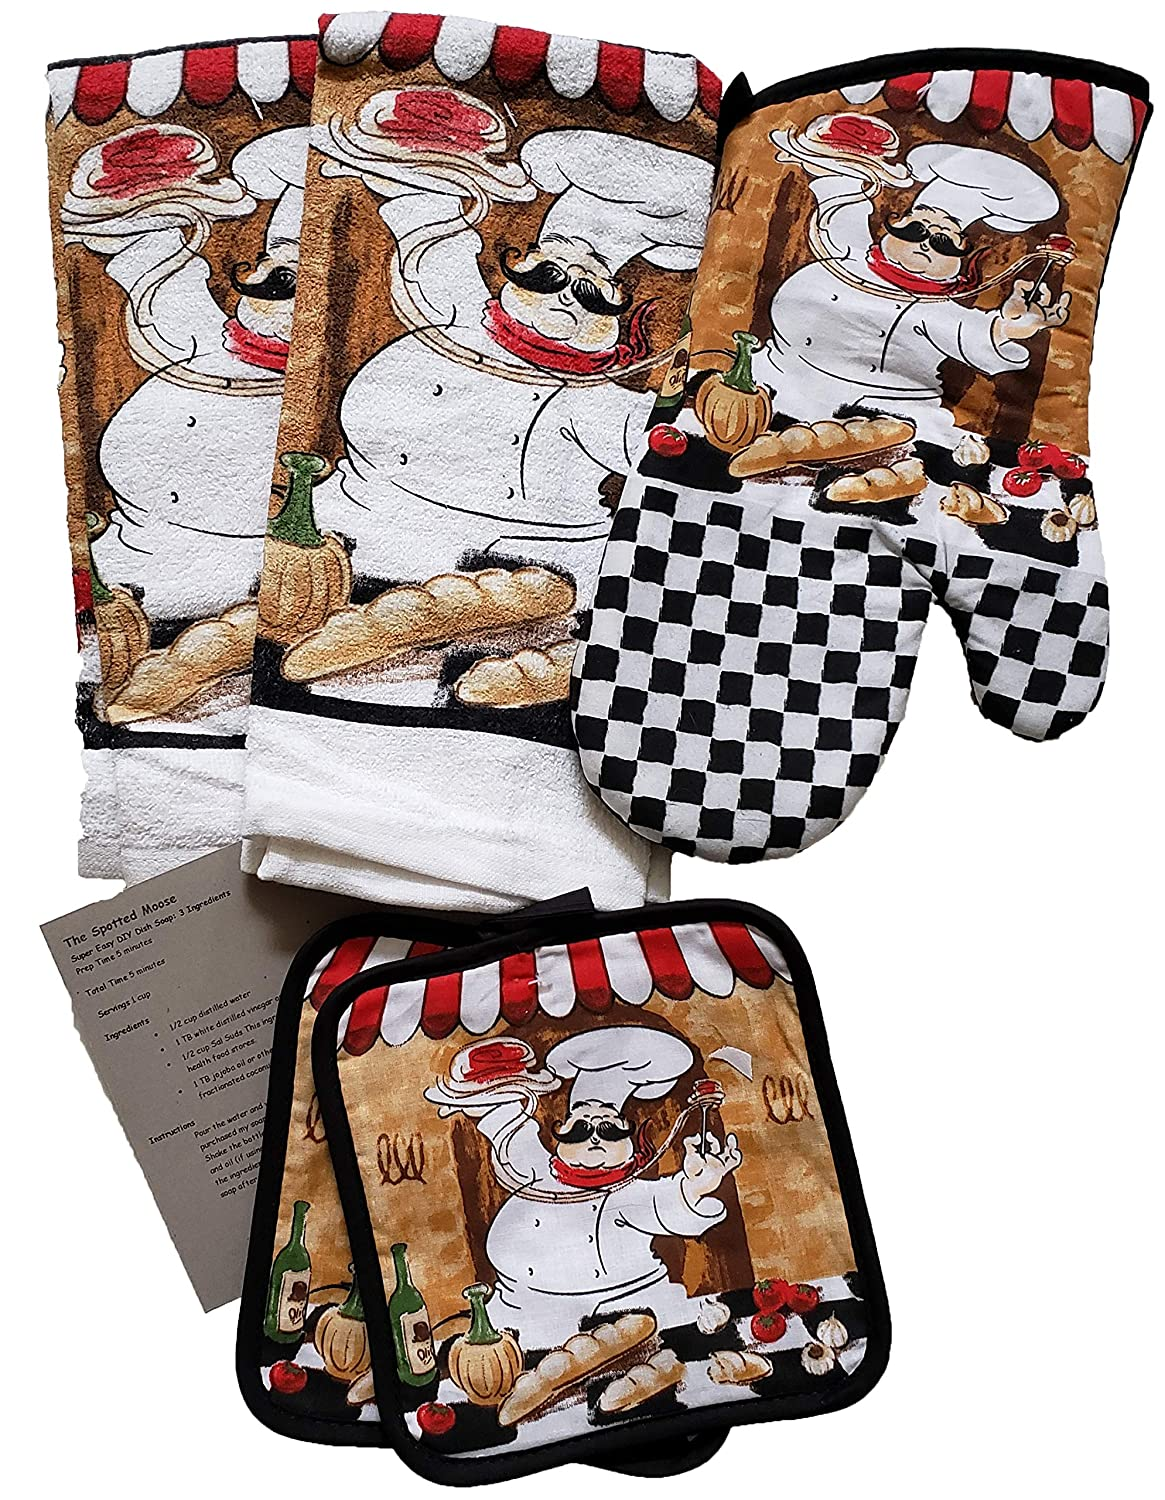 The Spotted Moose Colorful Chef Themed 5 Piece Kitchen Linen Bundle with 2 Dish Towels, 2 Potholders, and 1 Oven Mitt (Chef)